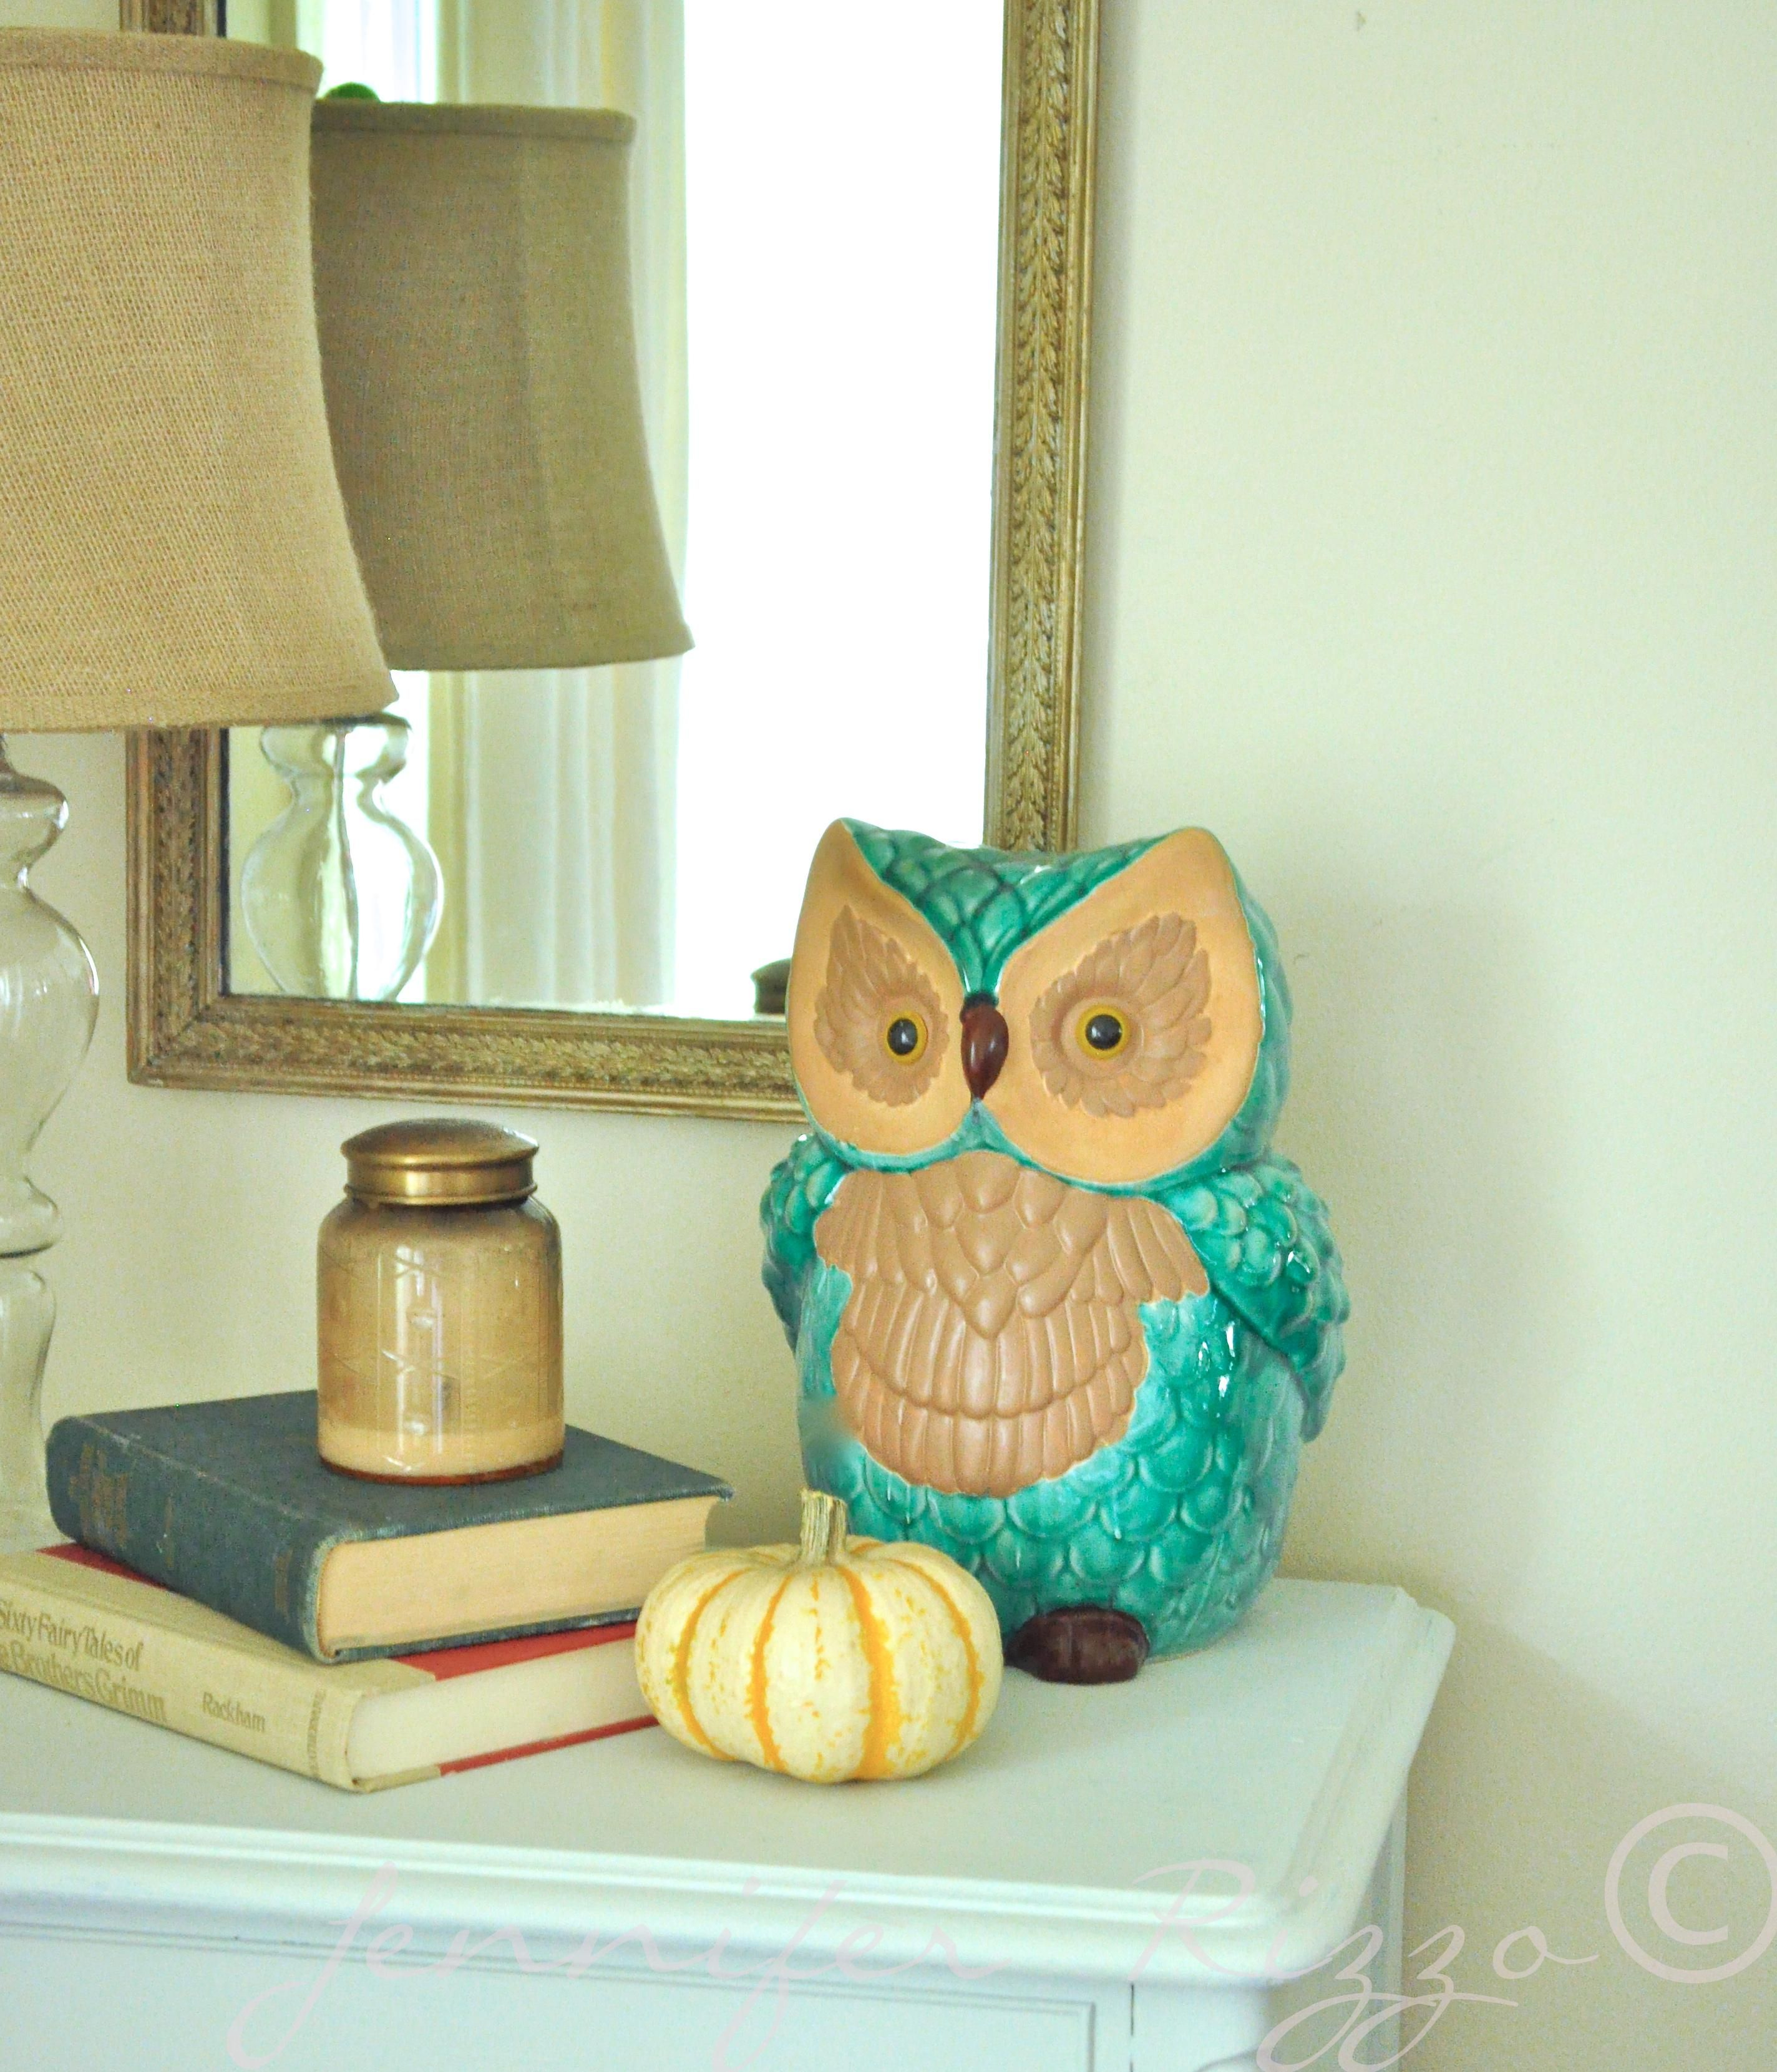 Owl Home Decor Accessories Pin By Ricki Chen On Ceramic And Pottery Pinterest Owl